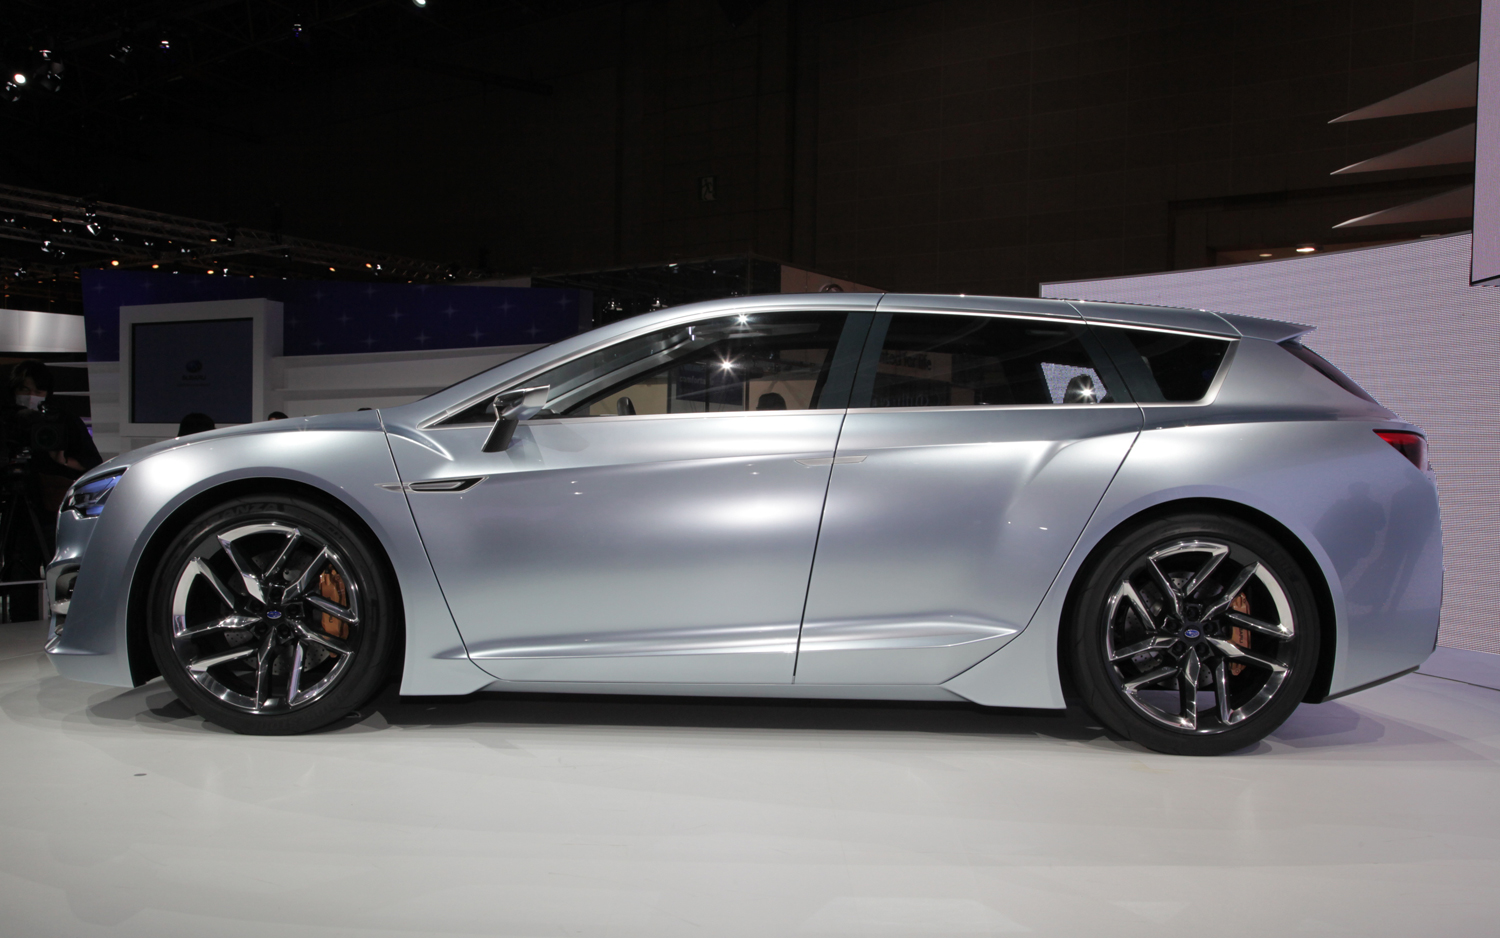 2019 Subaru Advanced Tourer Concept photo - 5